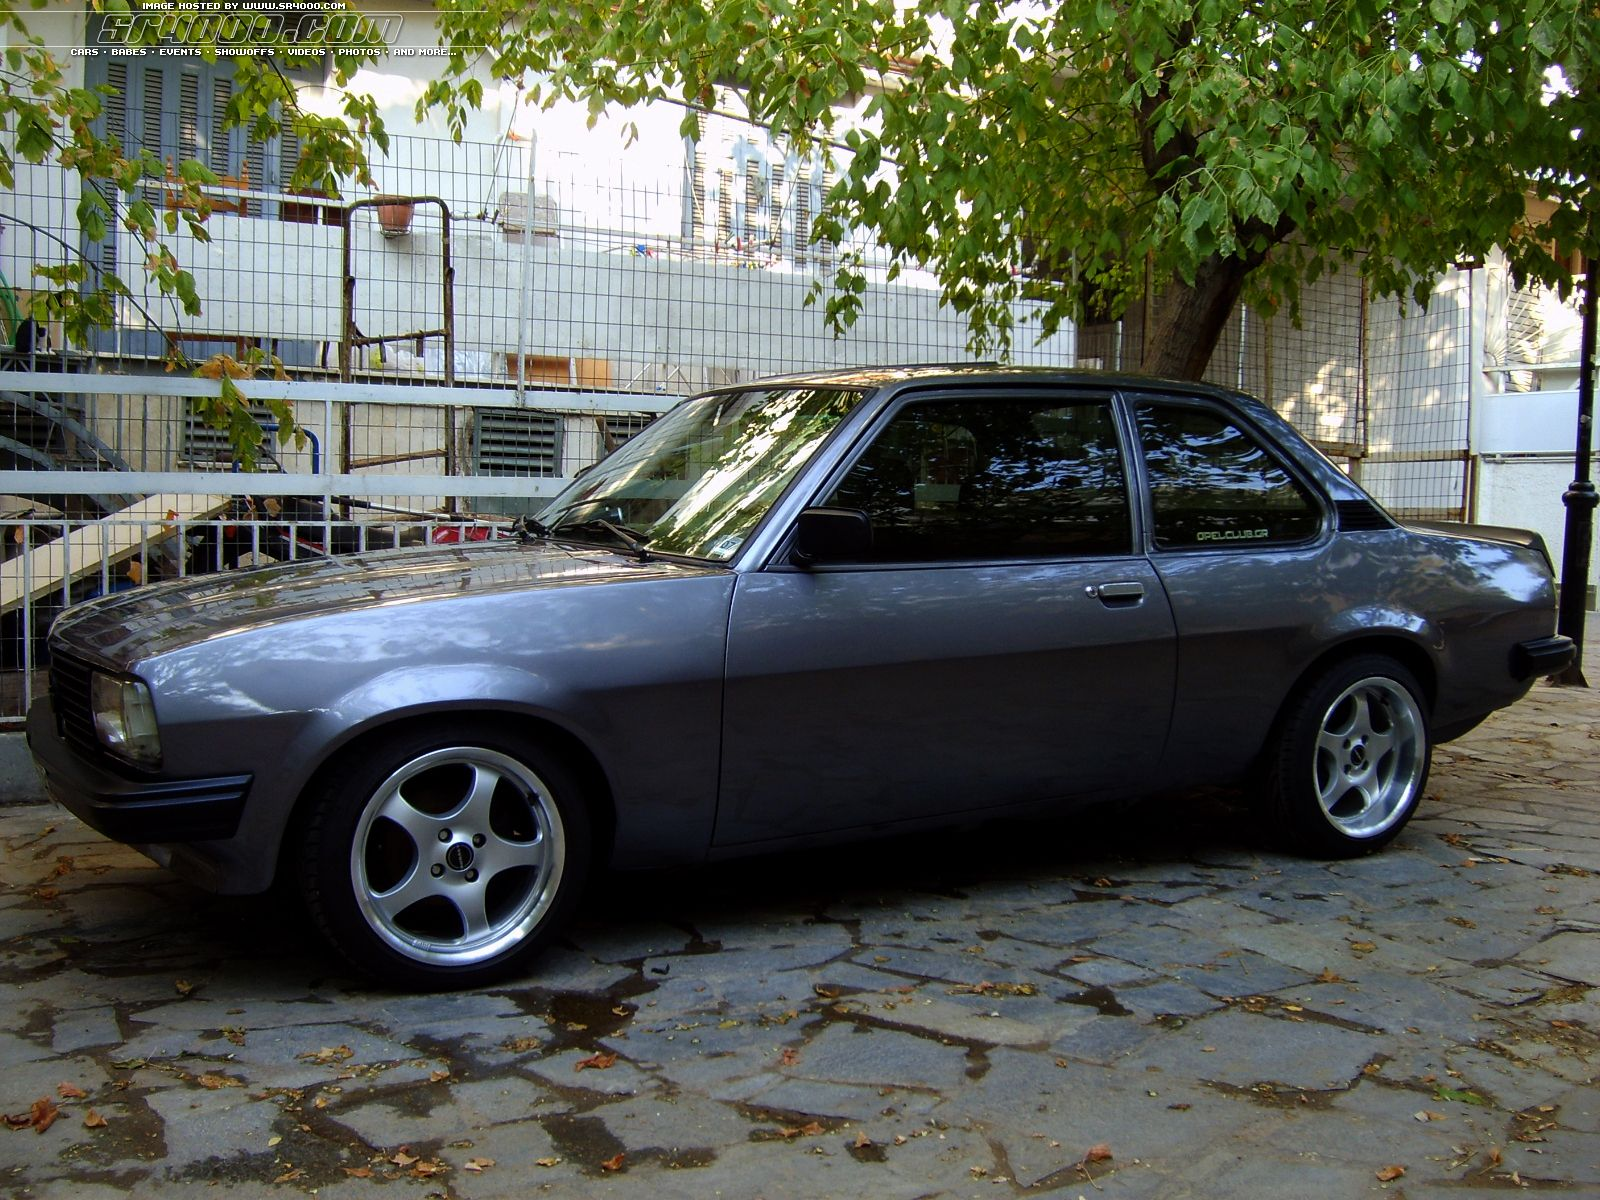 opel ascona 19s photos news reviews specs car listings. Black Bedroom Furniture Sets. Home Design Ideas